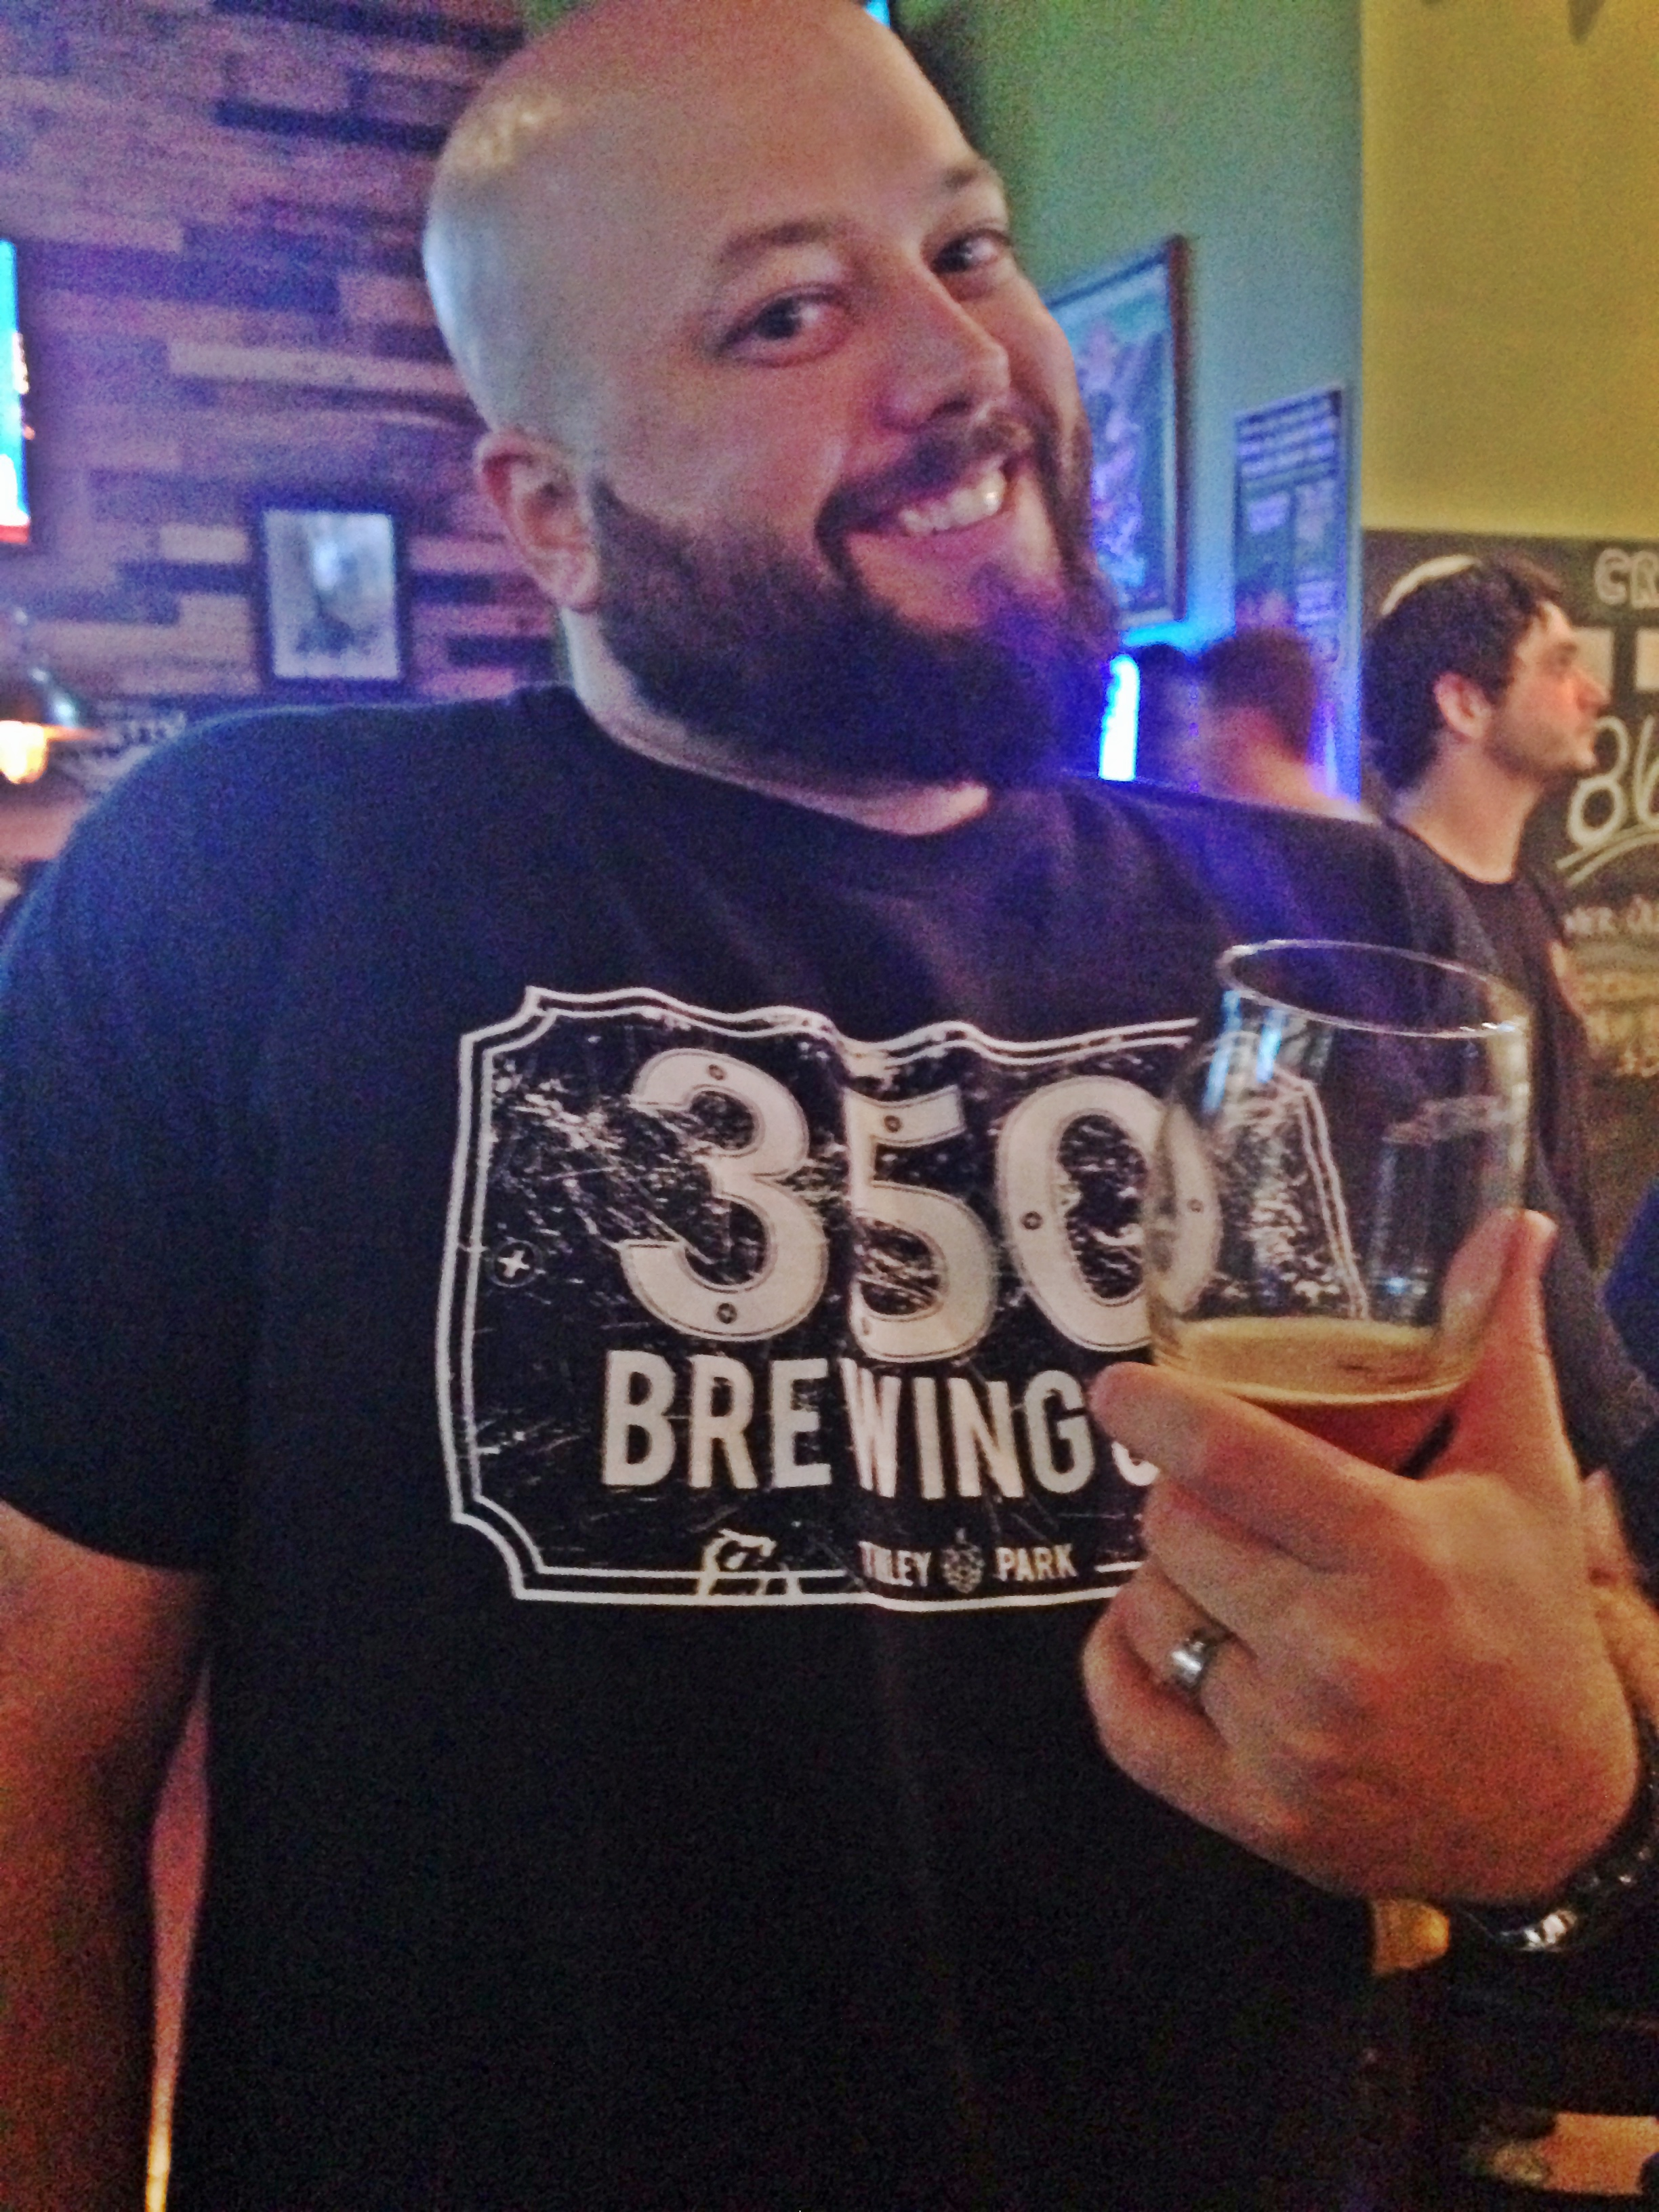 350 Brewing Company. Tinley Park, IL